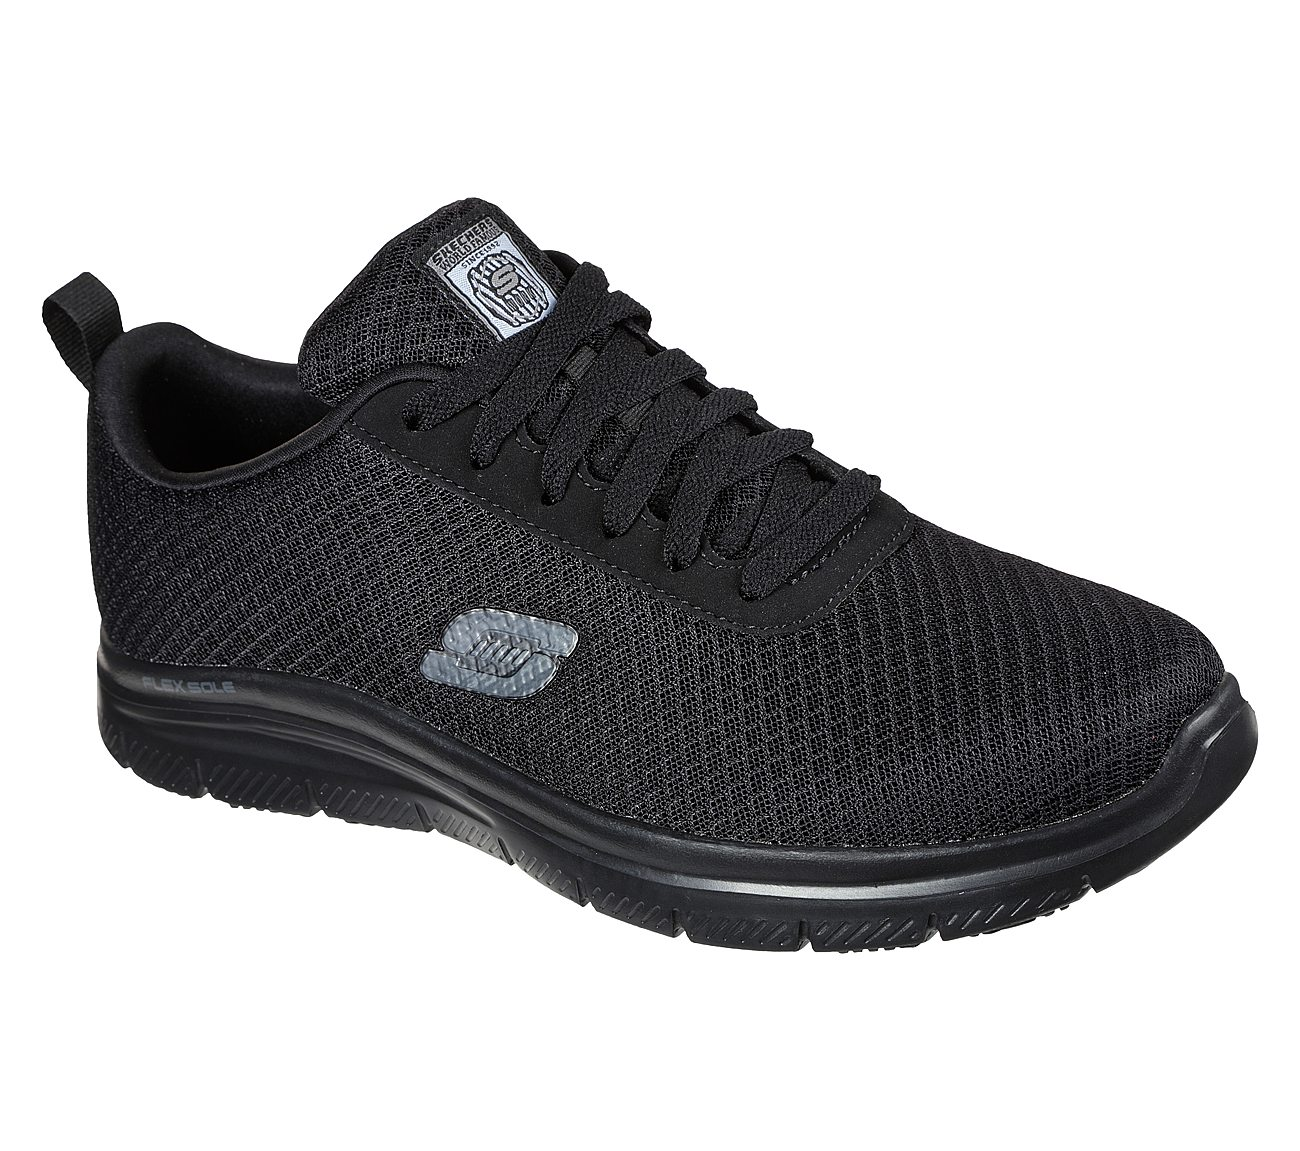 Buy Skechers Work Relaxed Fit Flex Advantage Bendon Sr Work Shoes